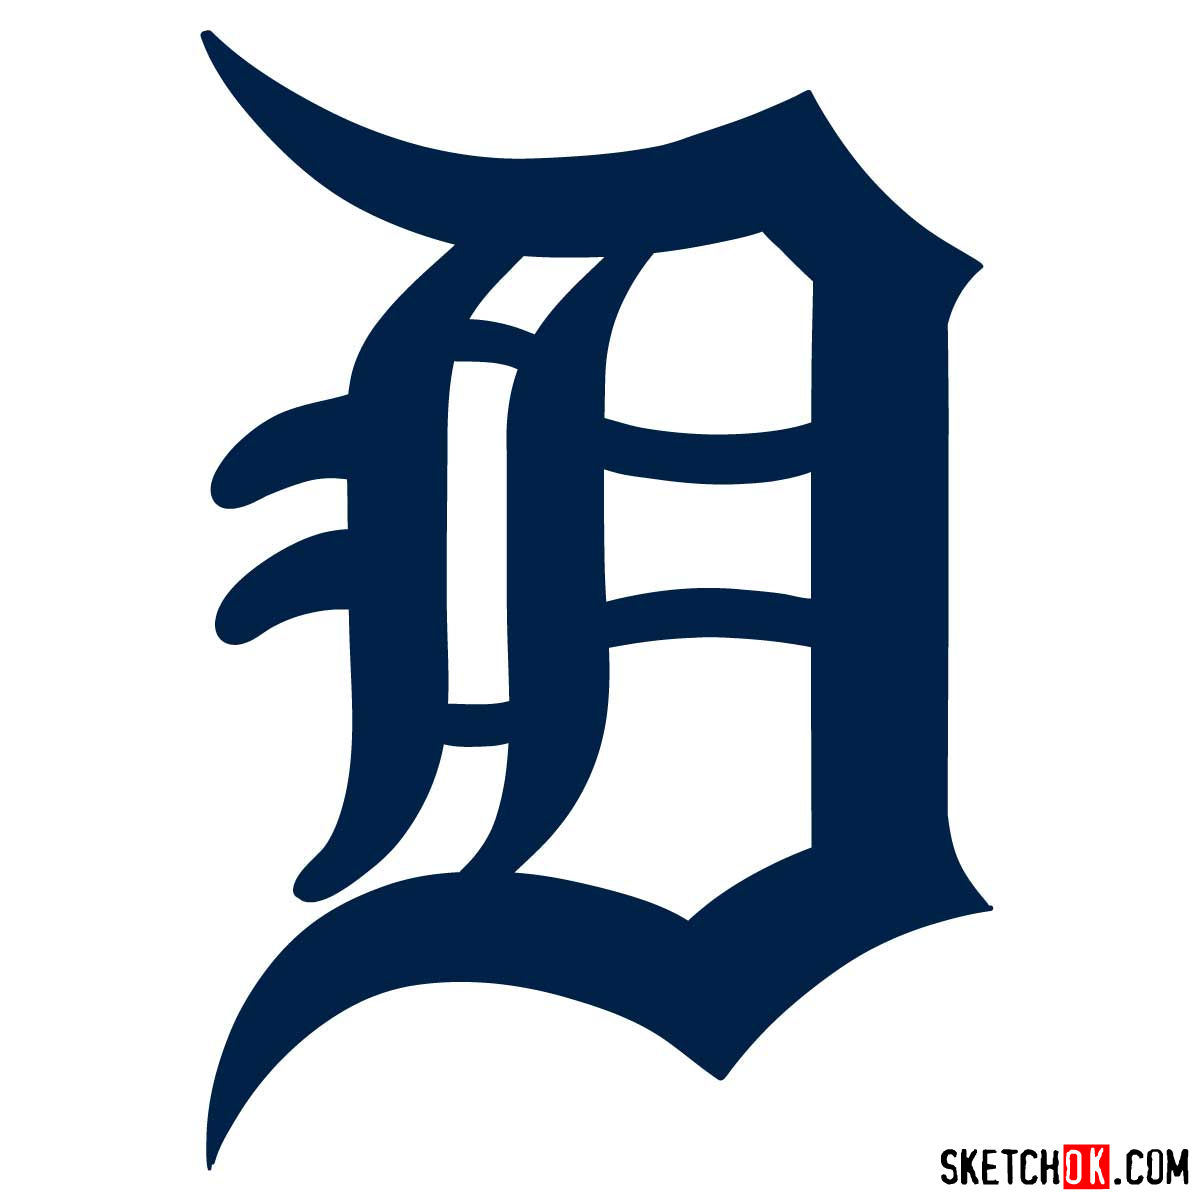 How to draw Detroit Tigers logo | MLB logos